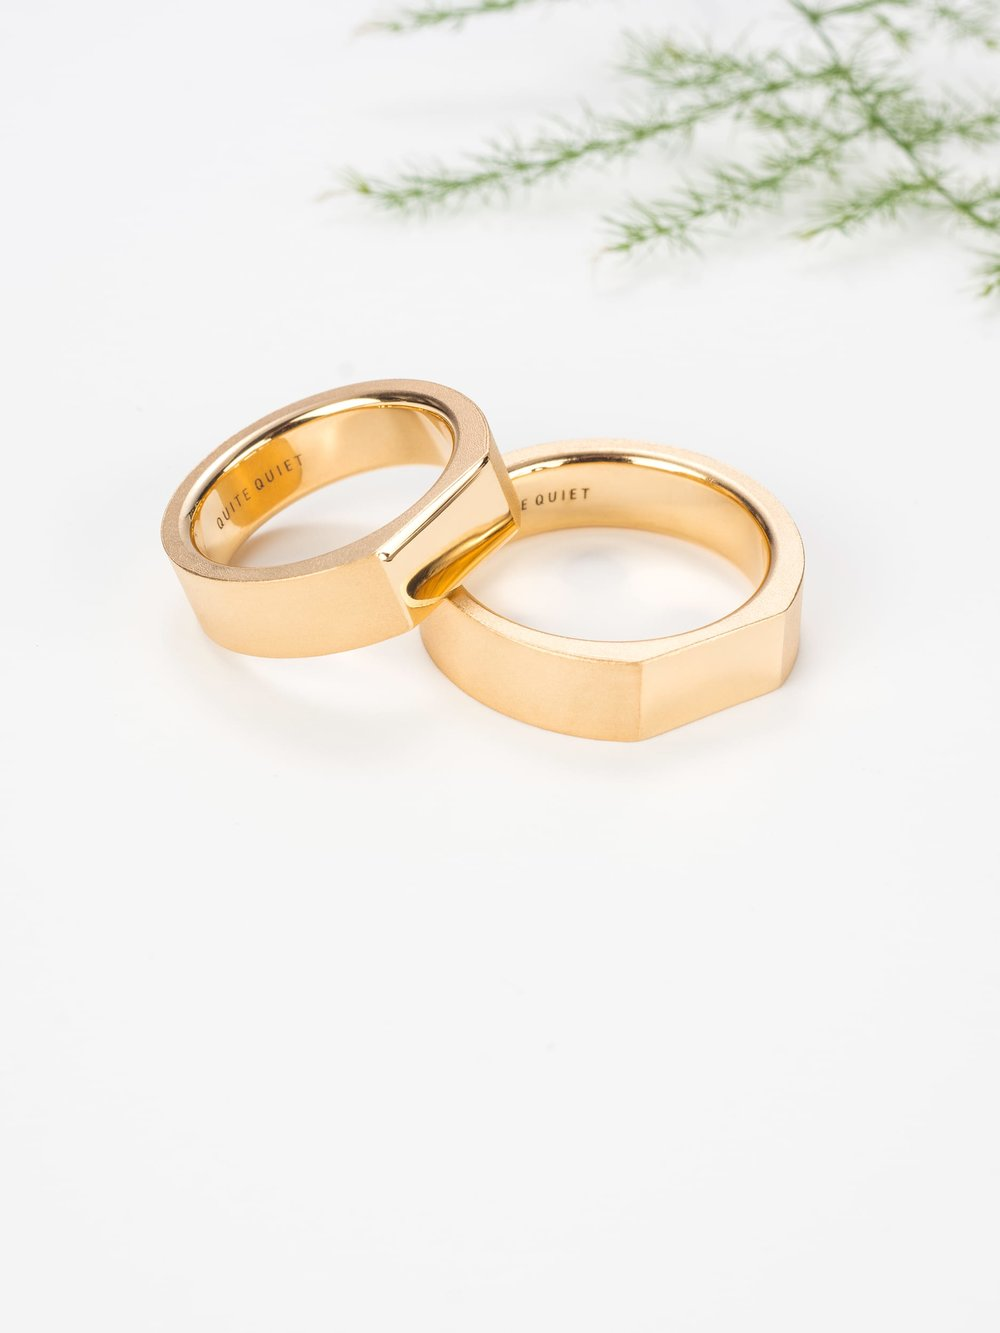 Pair of Wedding Rings No3 Quite Quiet Jewelry